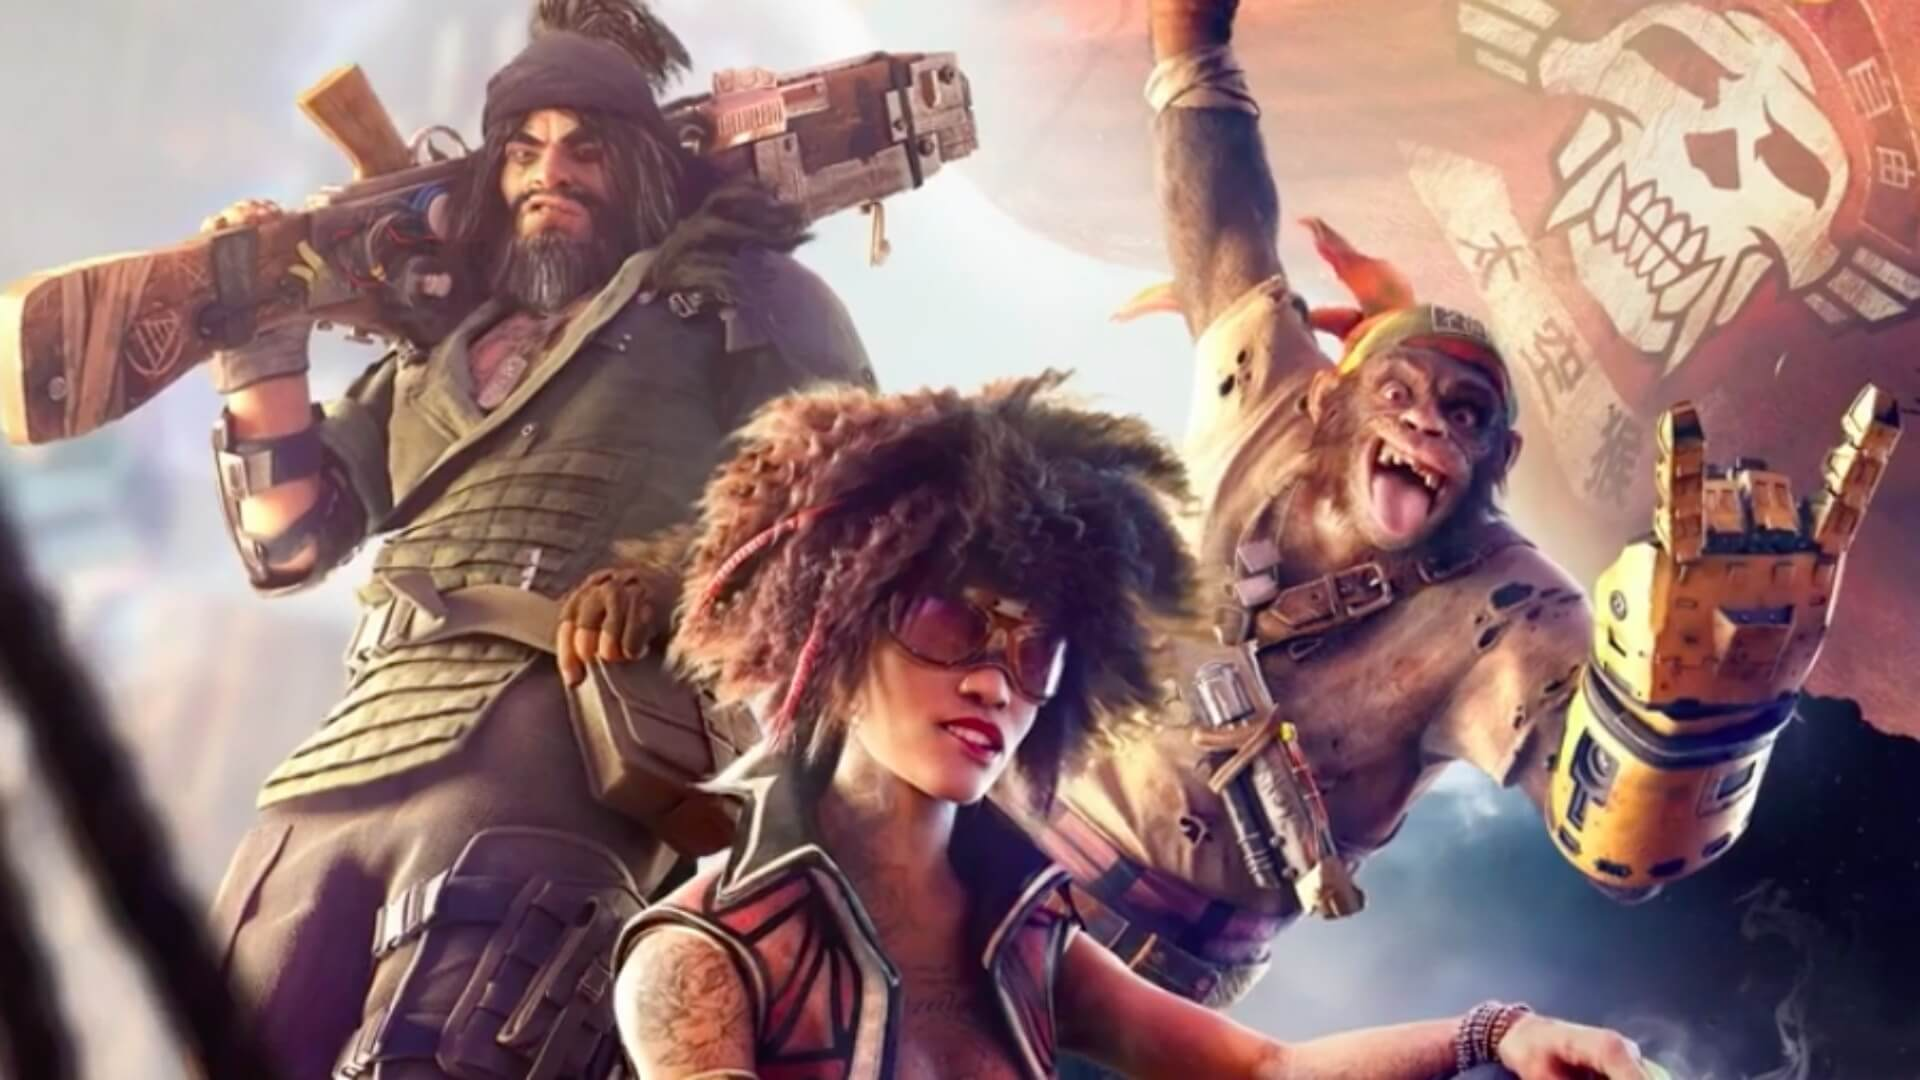 E3 2018: Beyond Good and Evil 2 is a Prequel and It Looks Amazing